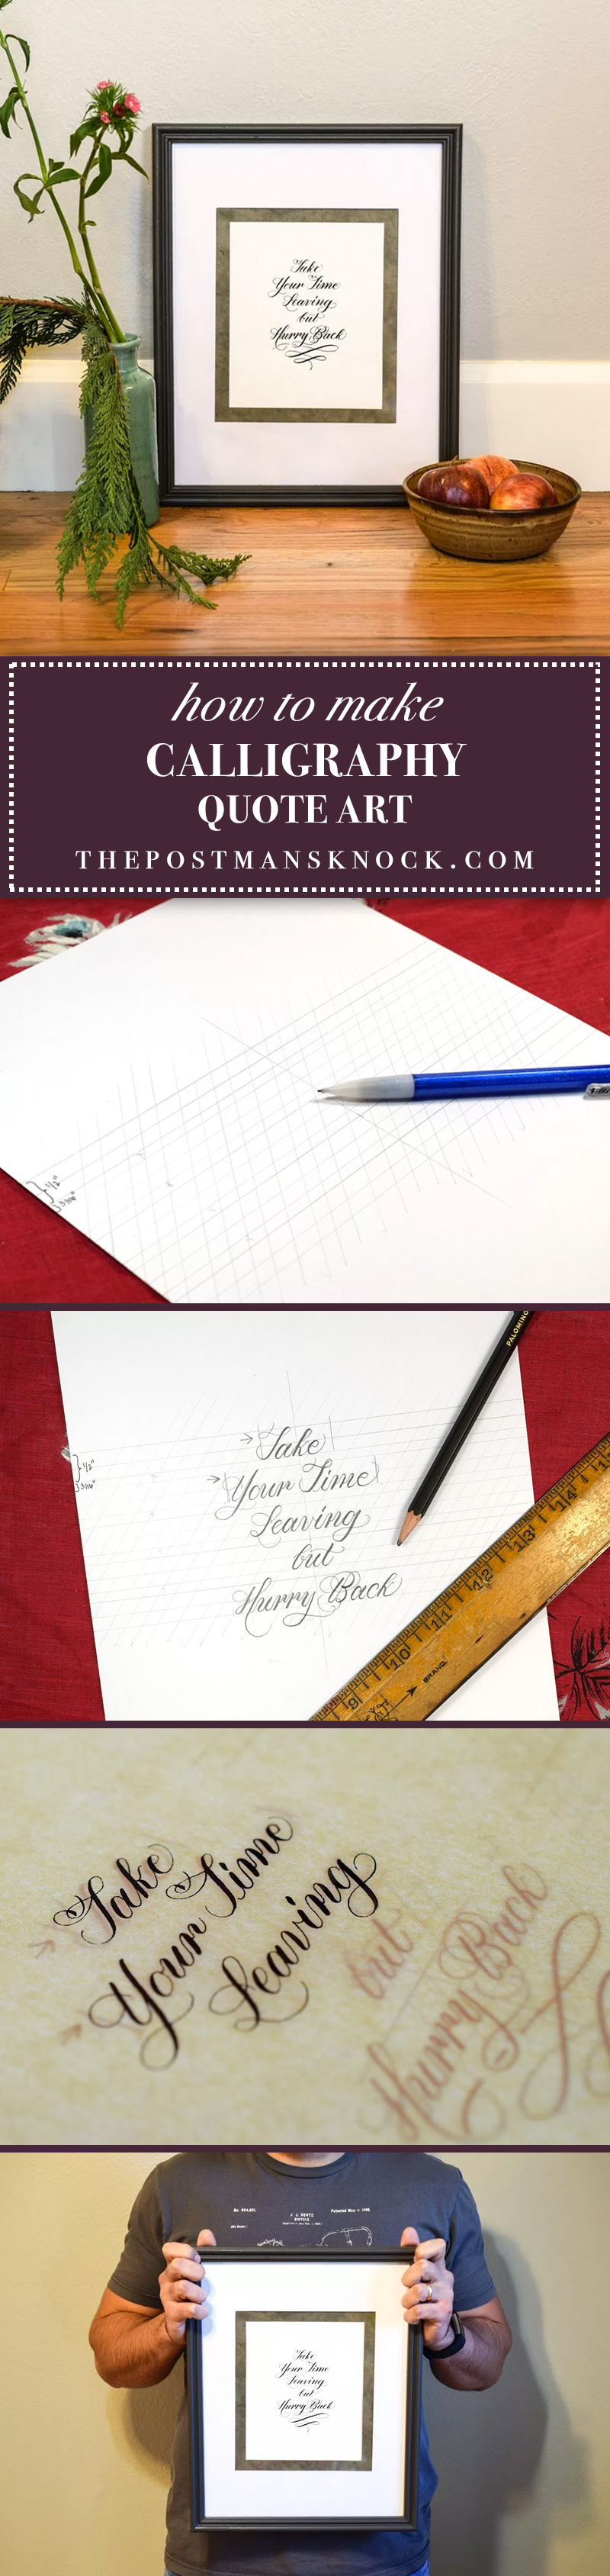 How to make calligraphy quote art the postman s knock